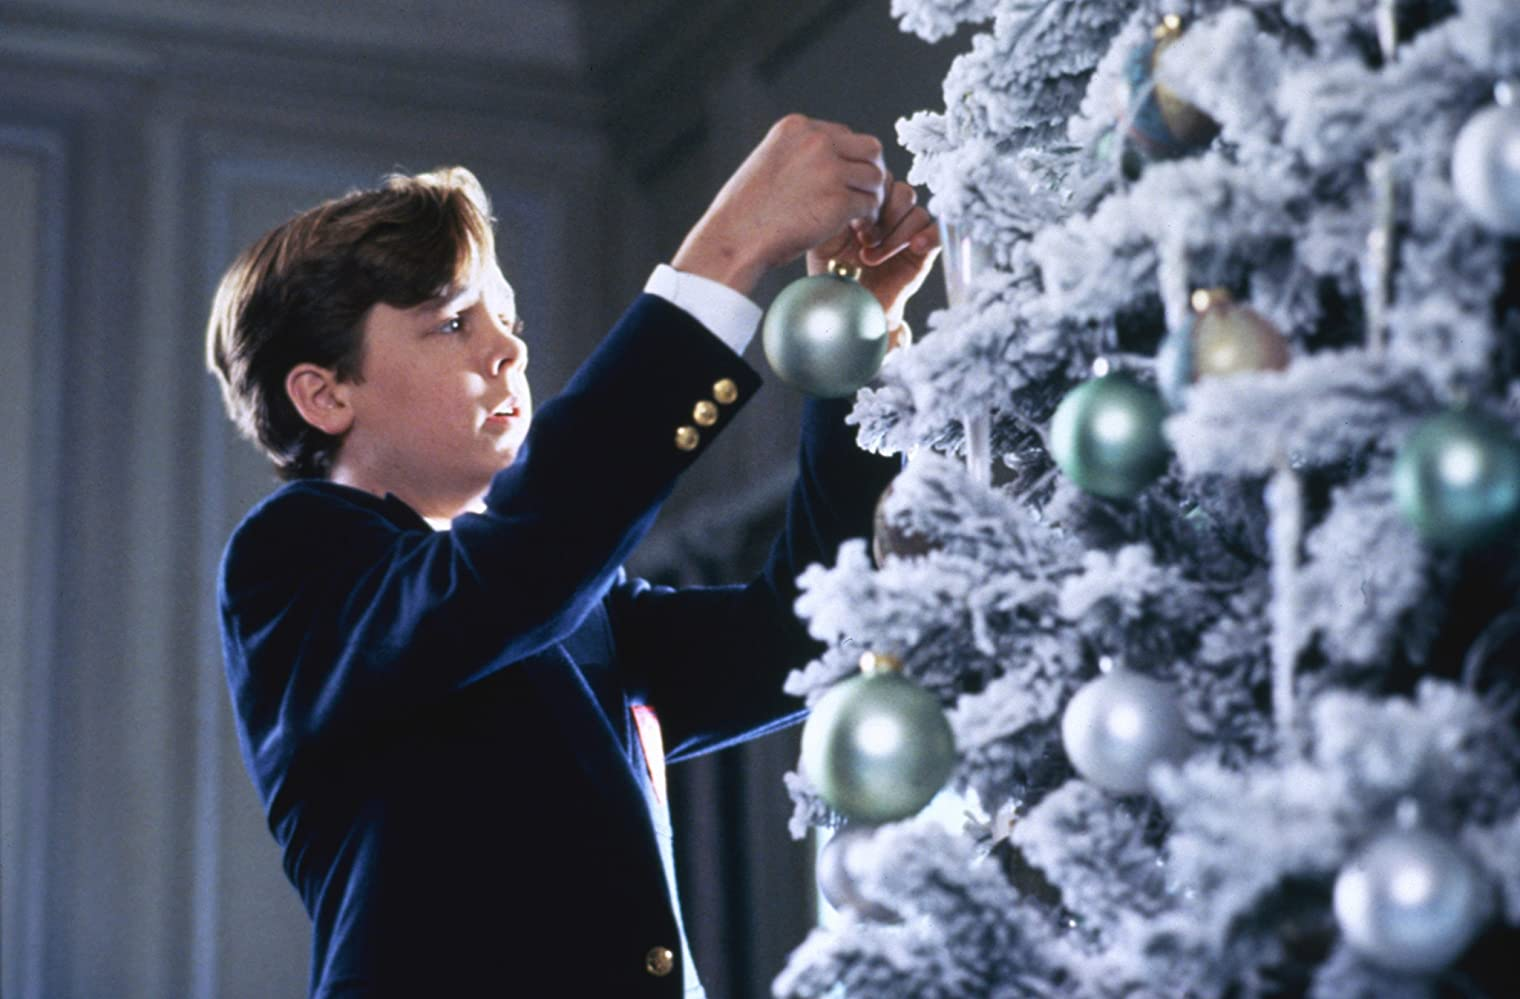 ethan embry in all i want for christmas 1991 - All I Want For Christmas 1991